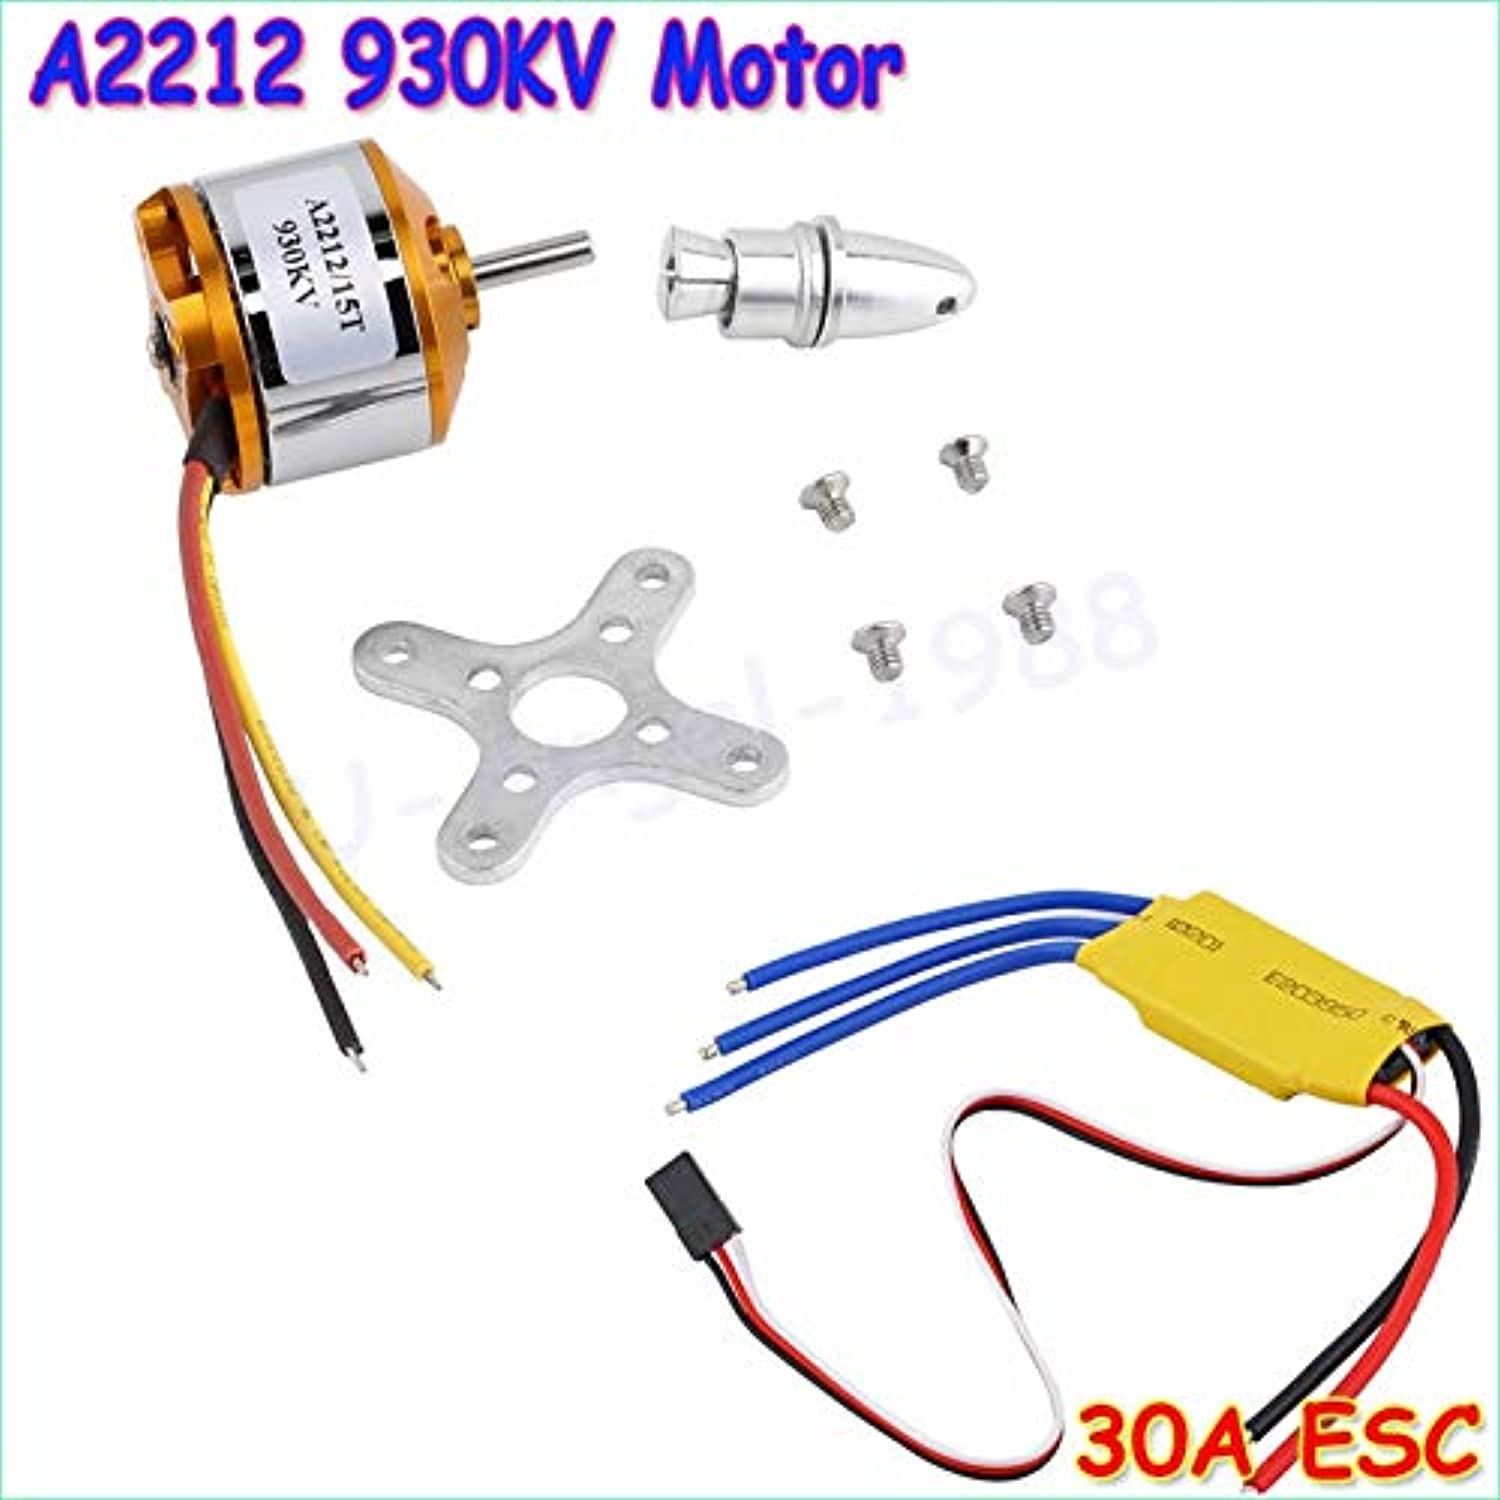 Laliva New Motor A2212 930KV Brushless Outrunner Motor W  Mount 15T+ ESC 30A for RC Aircraft Quadcopter UFO